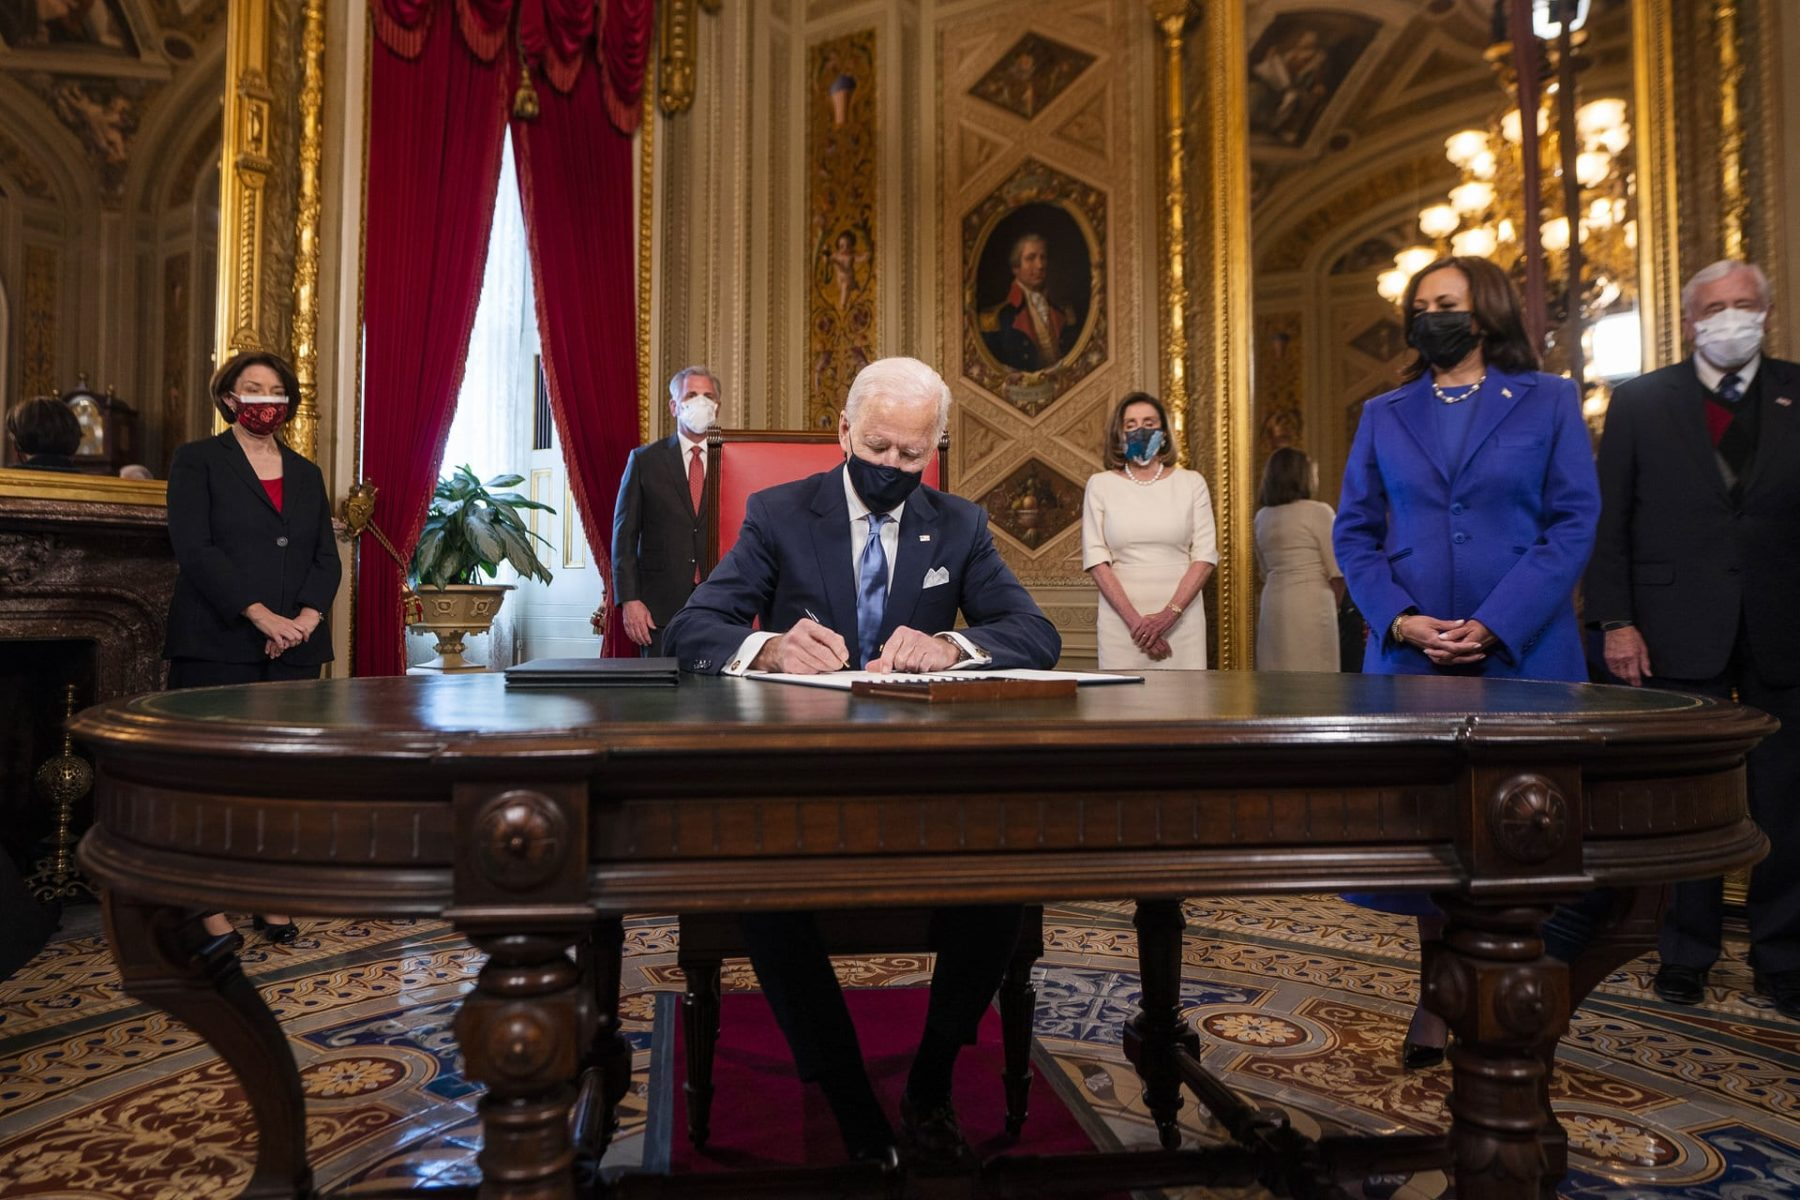 US President Joe Biden signs three documents at a table.